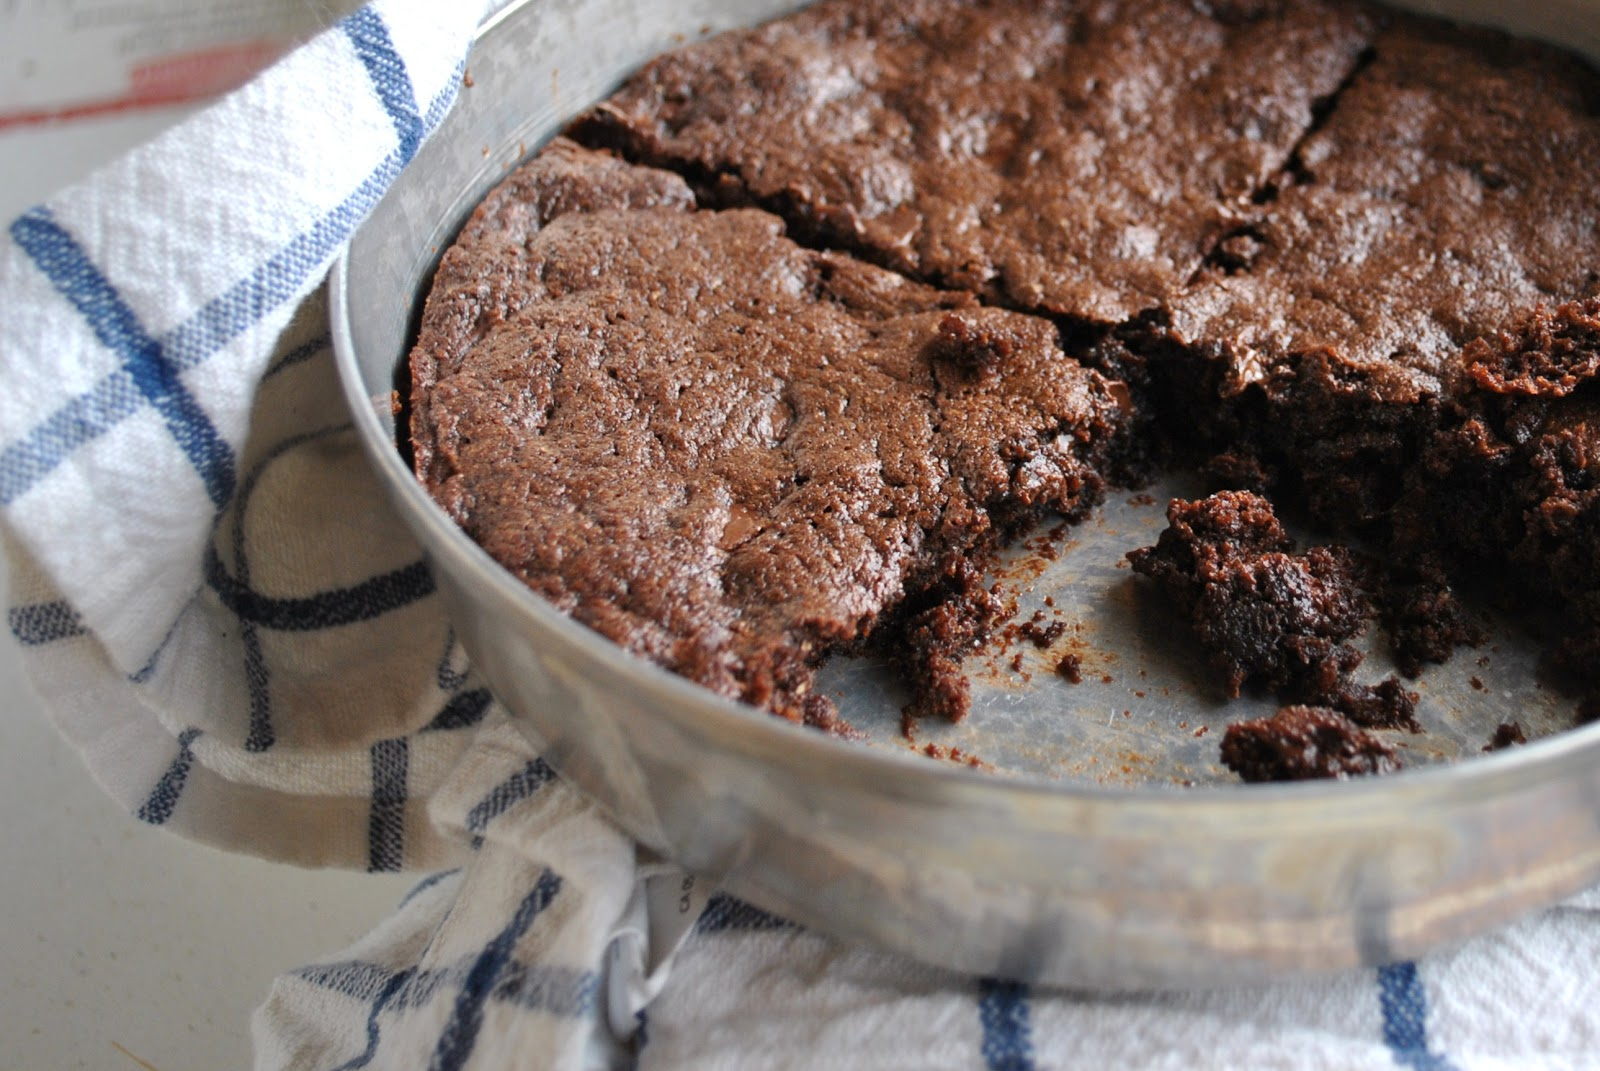 Kristin in Her Kitchen: Homemade Cocoa Brownies